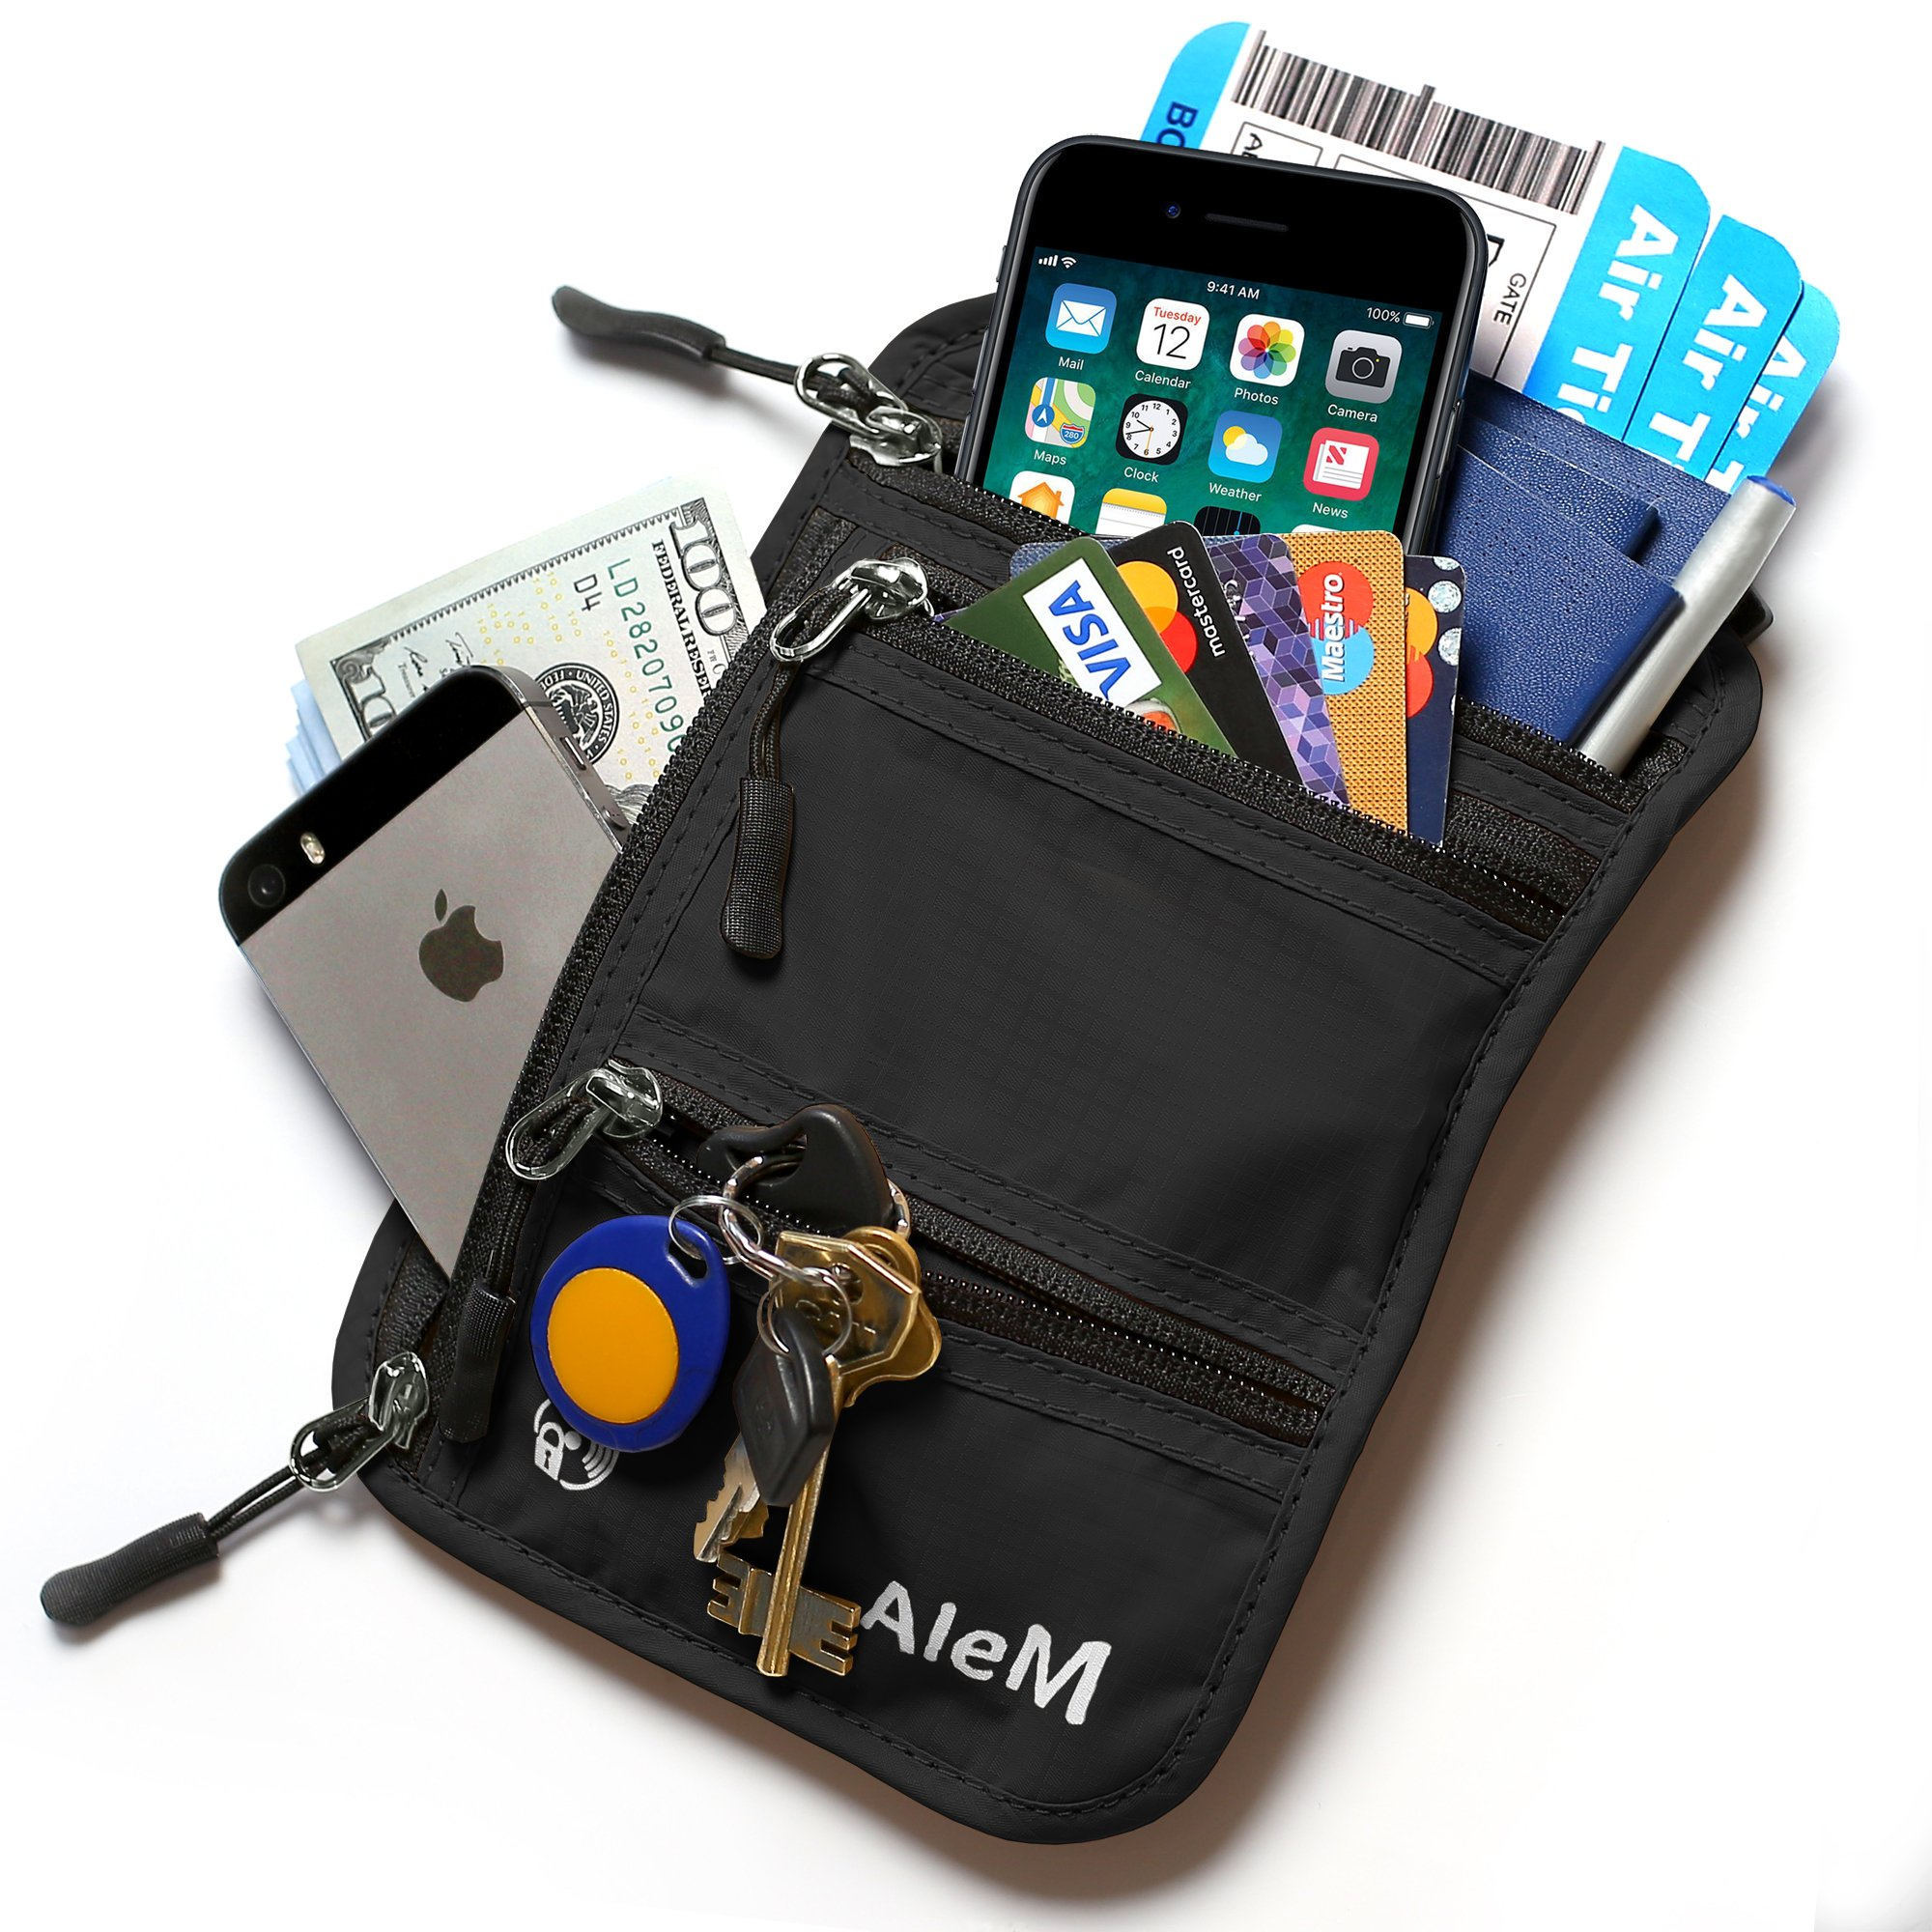 Waterproof Family Passport Holder by FLYNOVA Waterproof Document Organizer by FLYNOVA RFID Travel Passport Wallet 10479028 Travel Accessories for Credit Cards etc